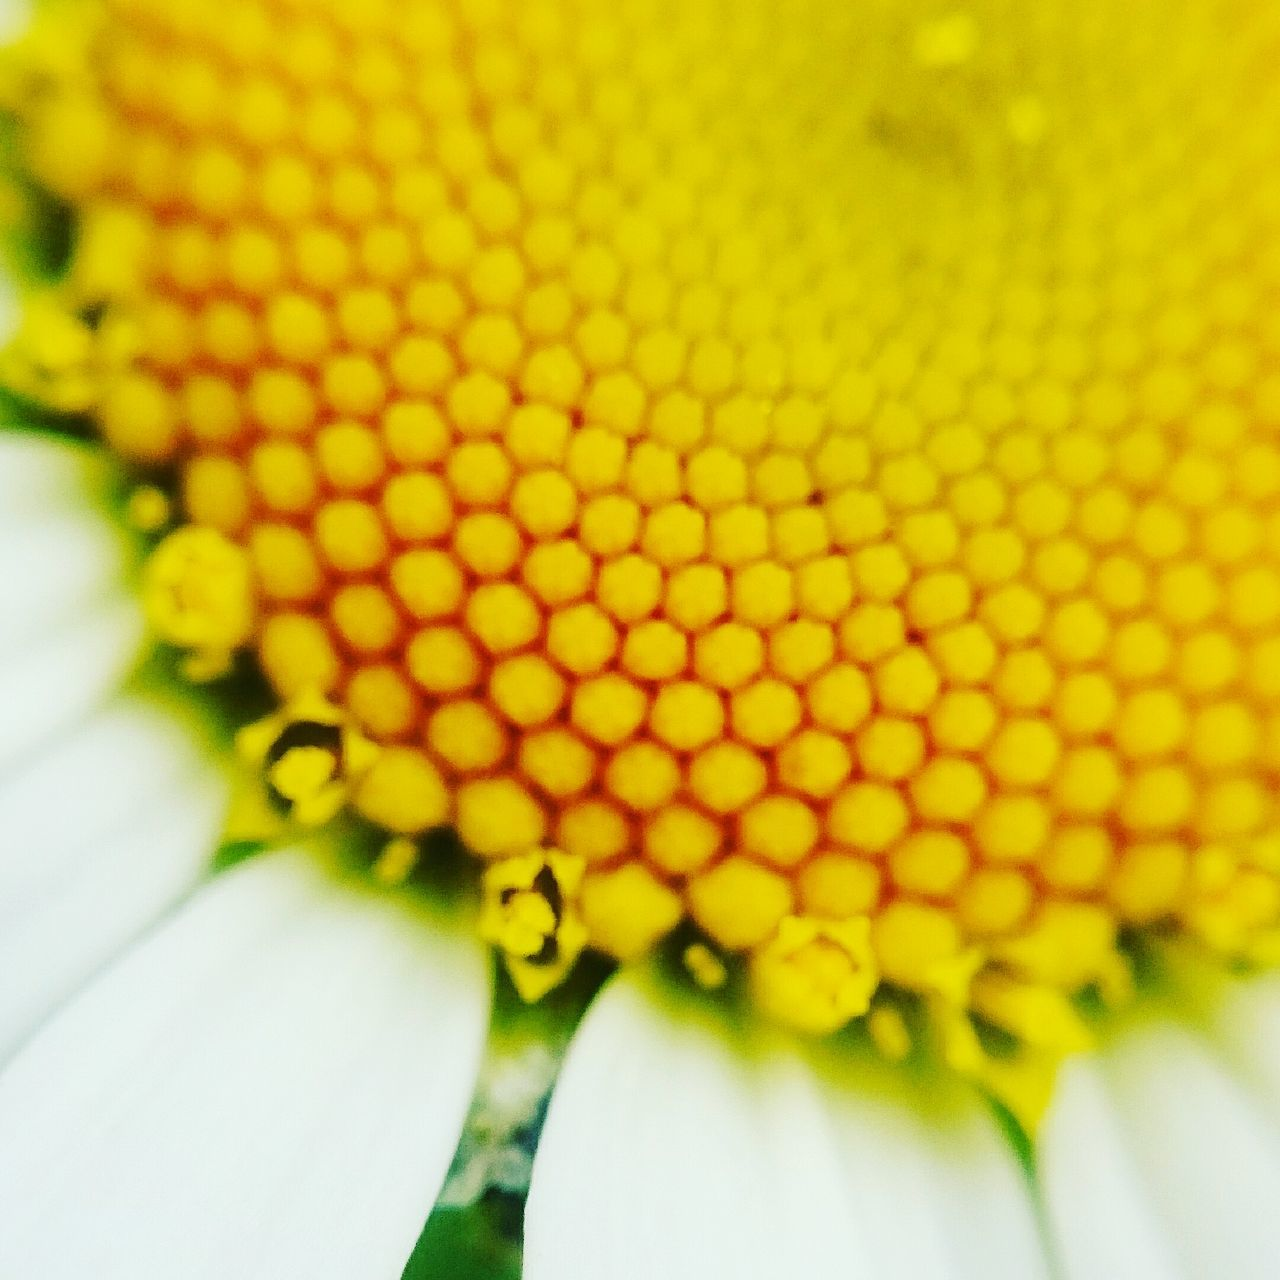 Yellow Flower Fragility Beauty In Nature Outdoors Day Flower Head Nature Summer ☀ Daisyflower Daisy Daisy 🌼 Daisy💜